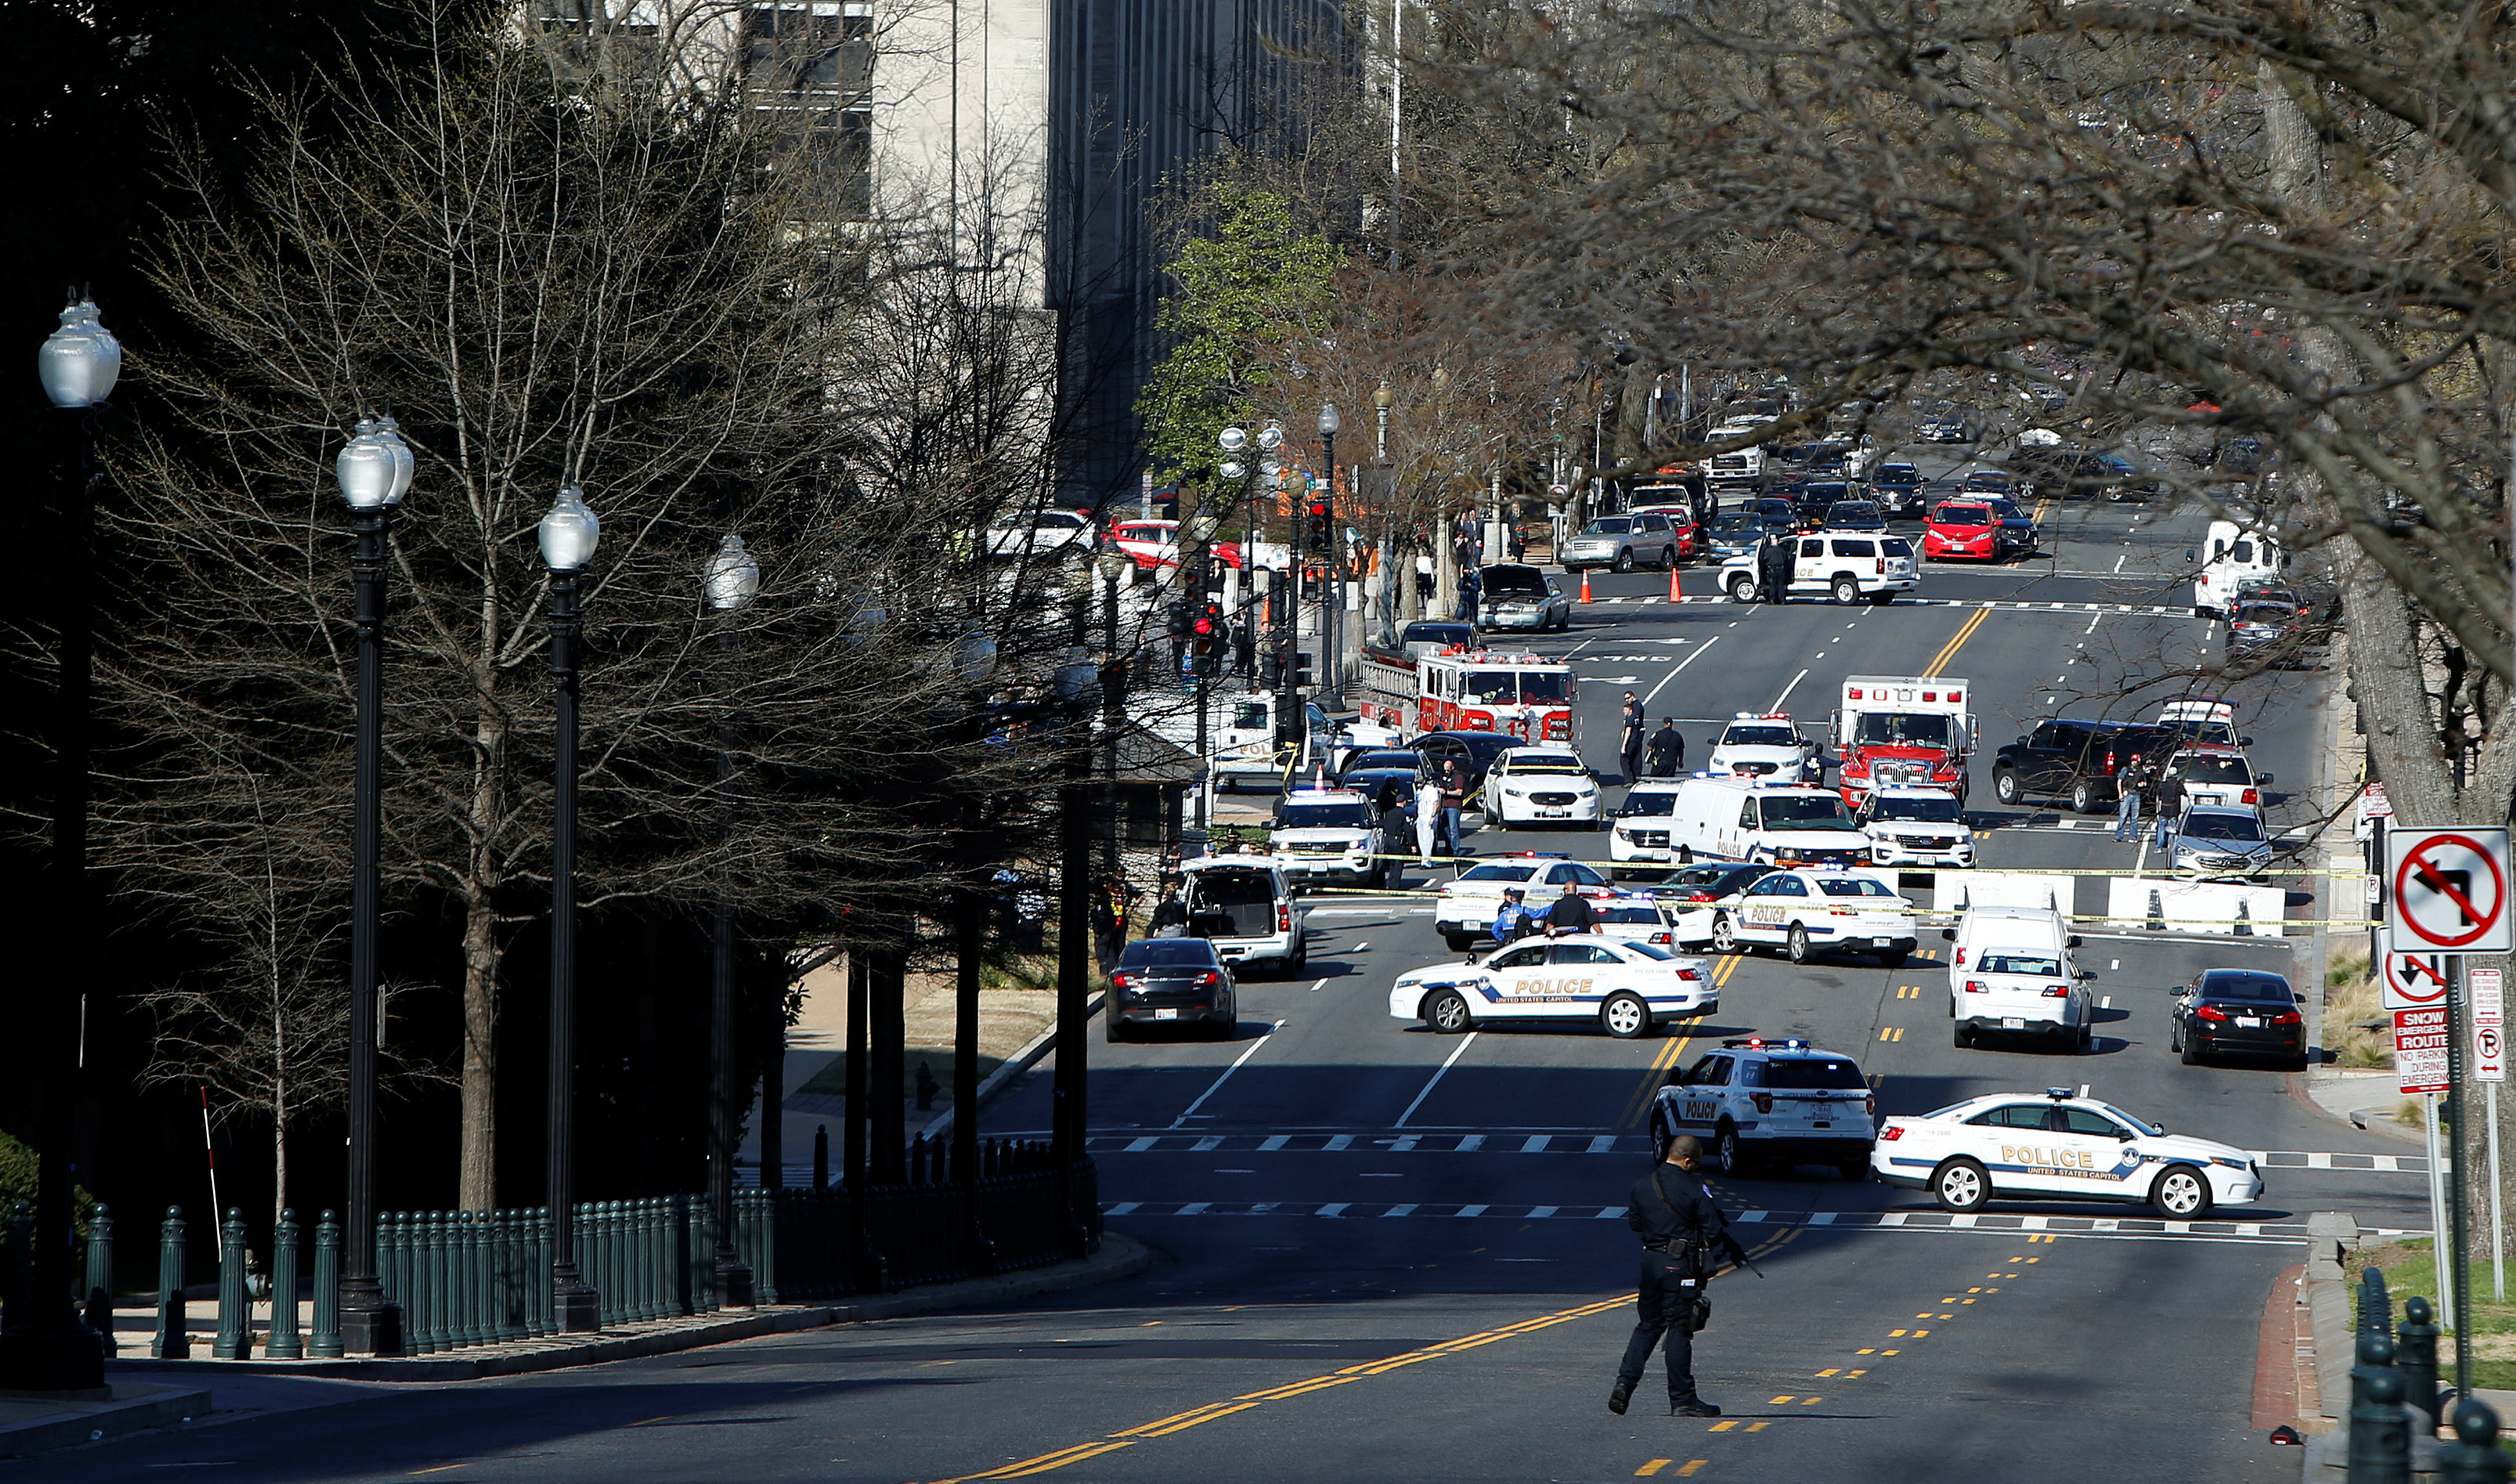 Capitol Hill police block traffic after a car whose driver struck a Capitol Police cruiser and then tried to run over officers, near the U.S. Capitol in Washington on March 29, 2017. (REUTERS/Joshua Roberts)